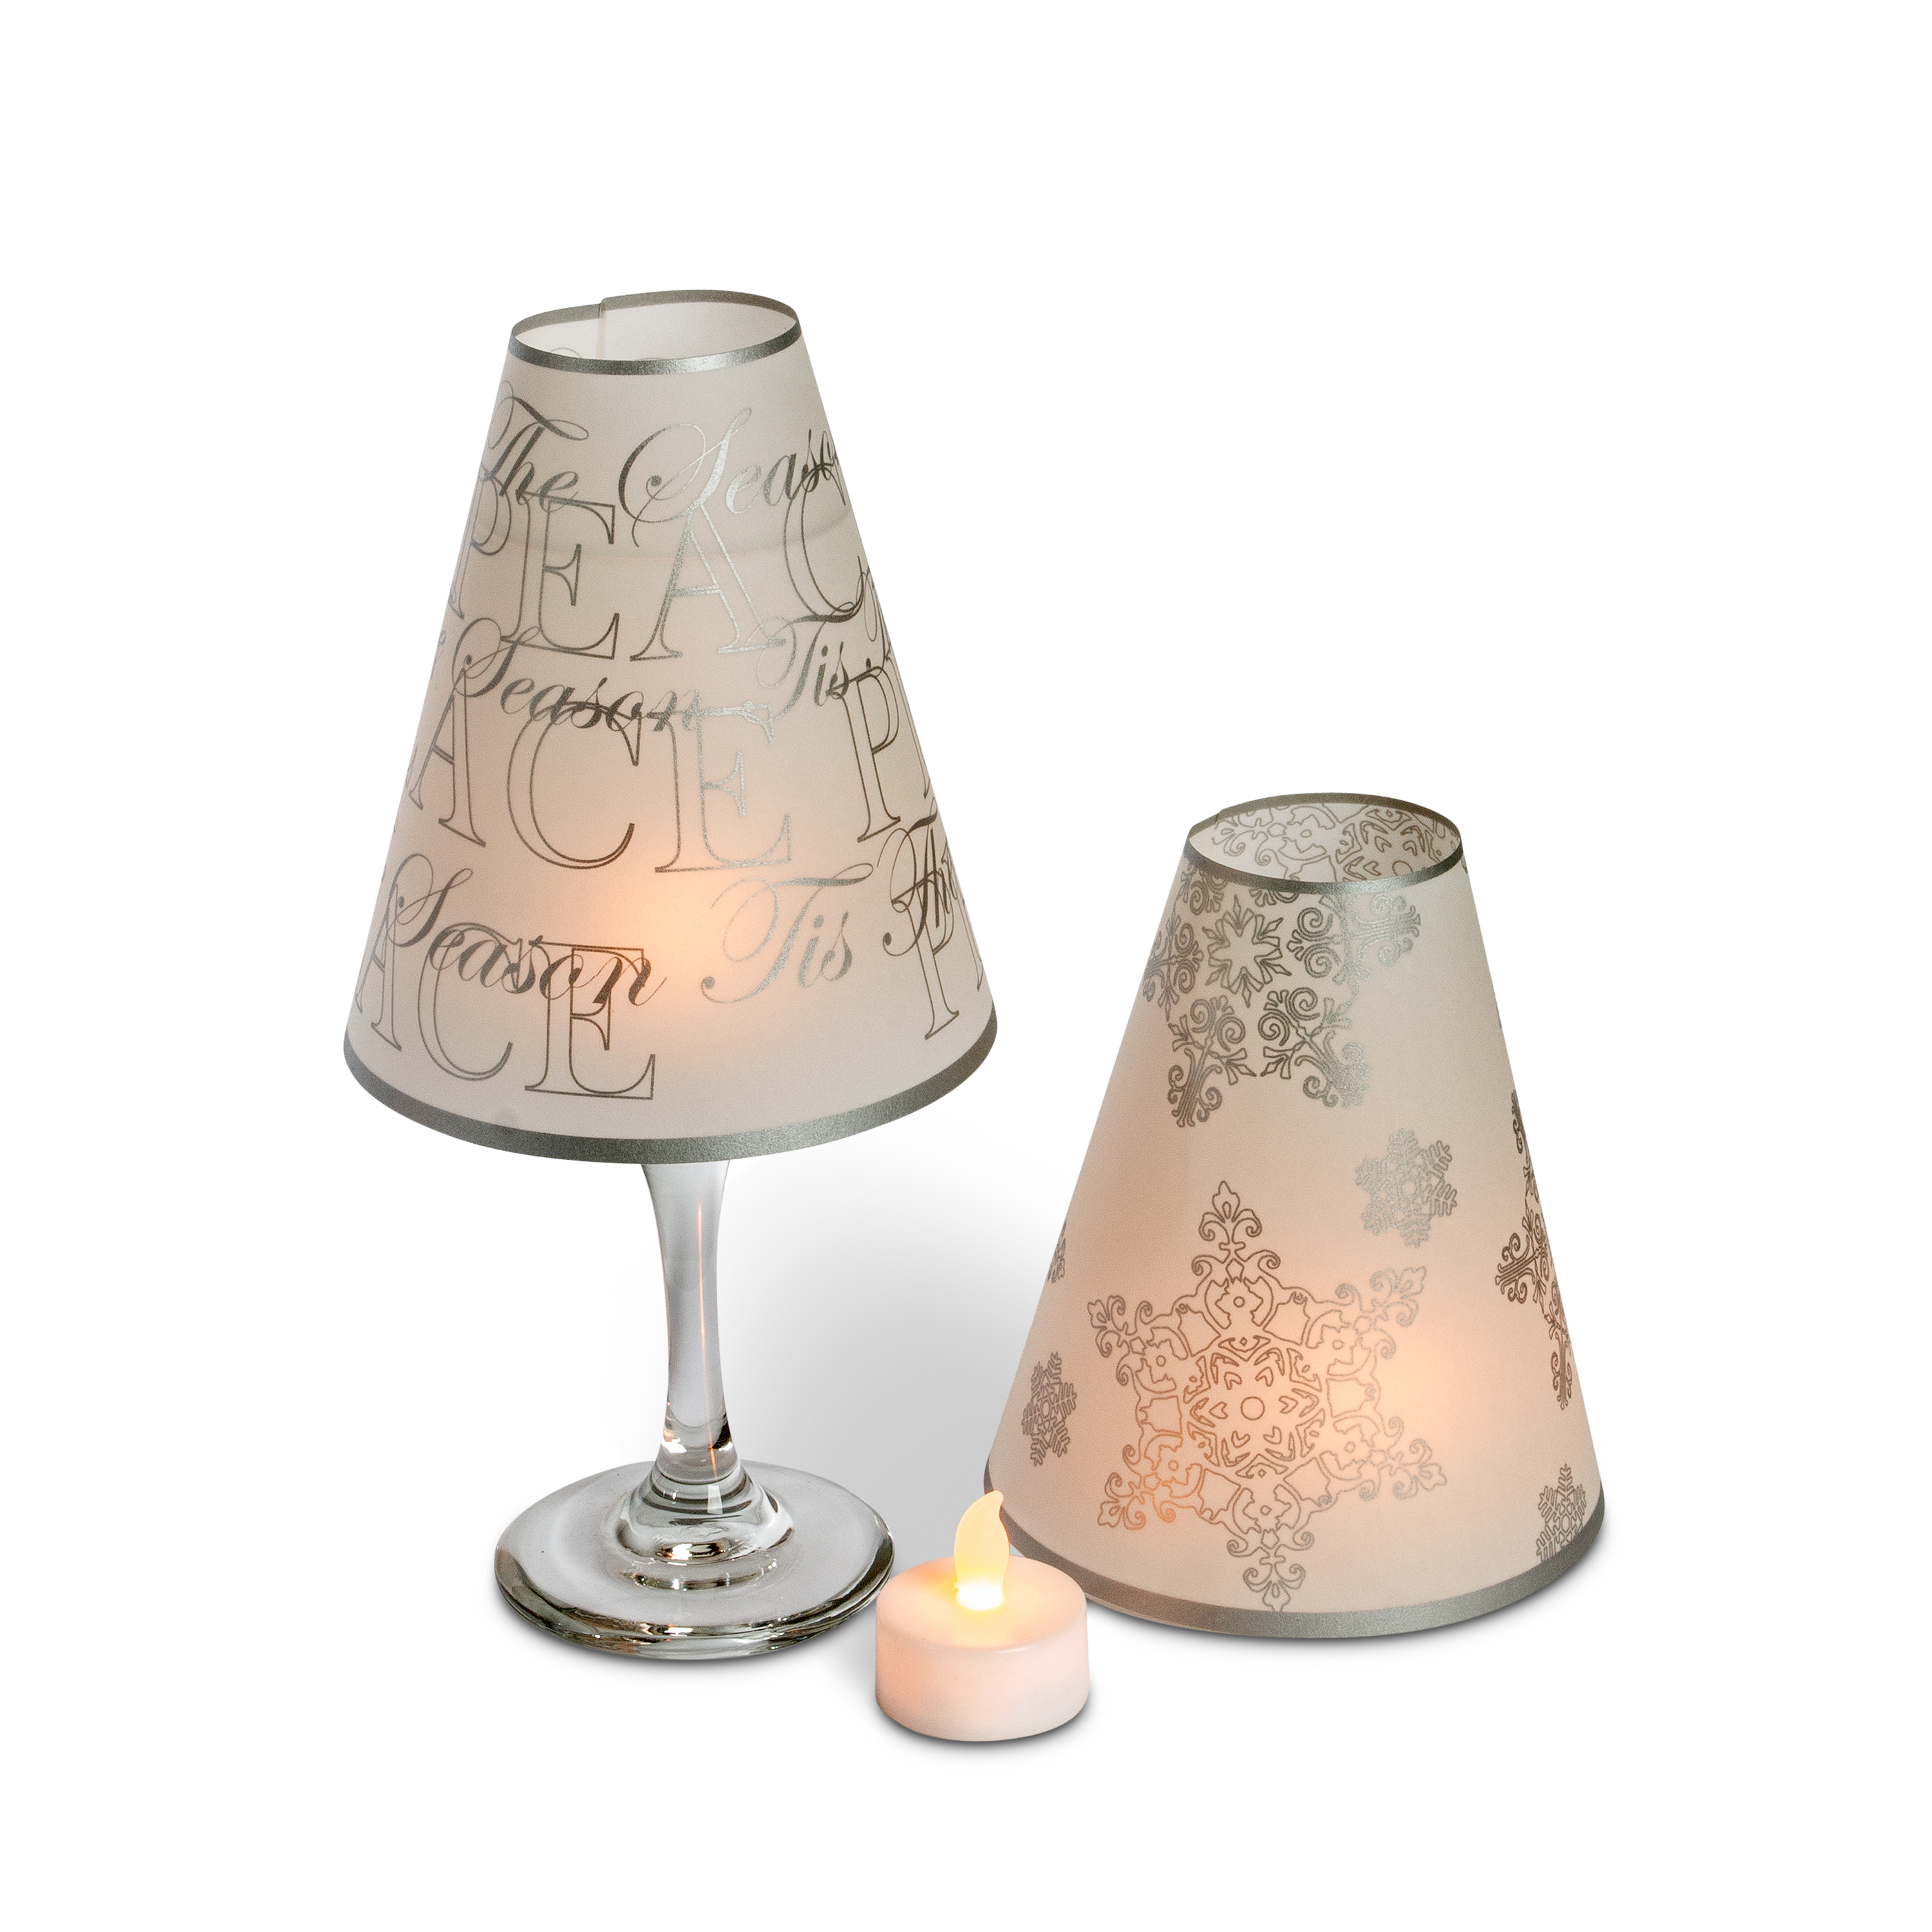 5 wine glass lamp shades tea lights home wedding decor centerpieces snowflake ebay Home decorators lamp shades